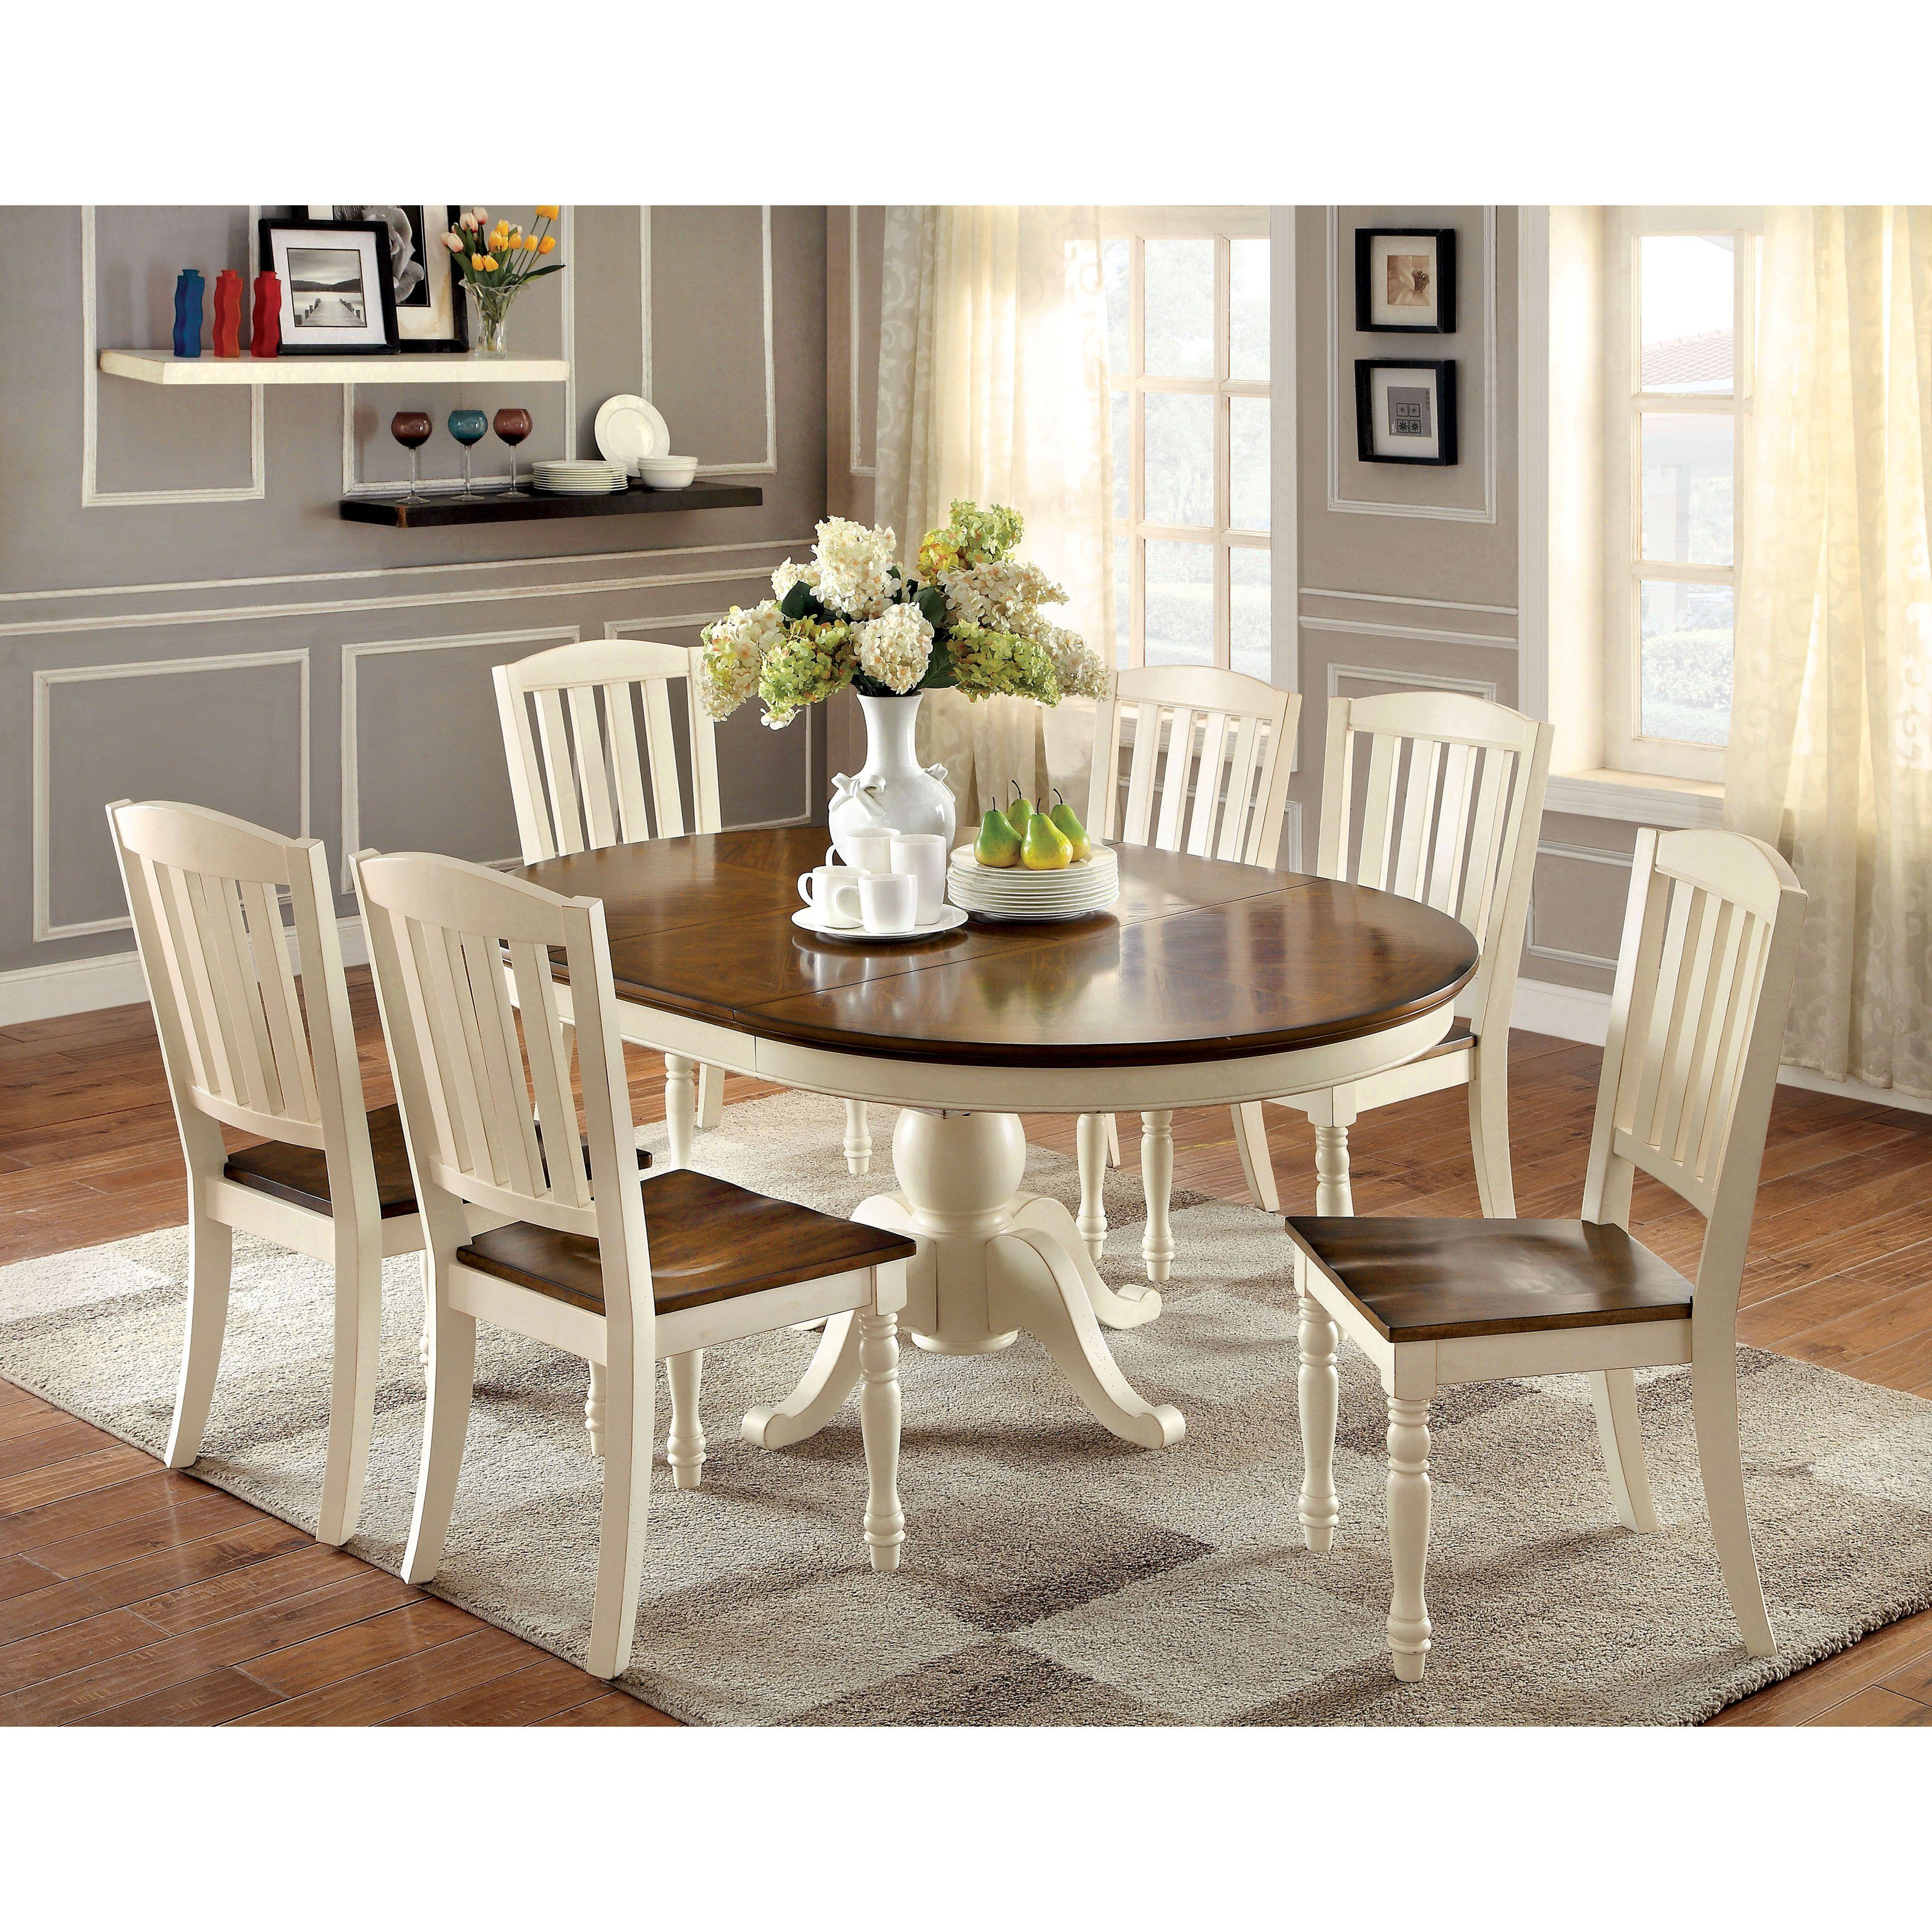 Furniture Of America Besette Cottage Oval Dining Table From